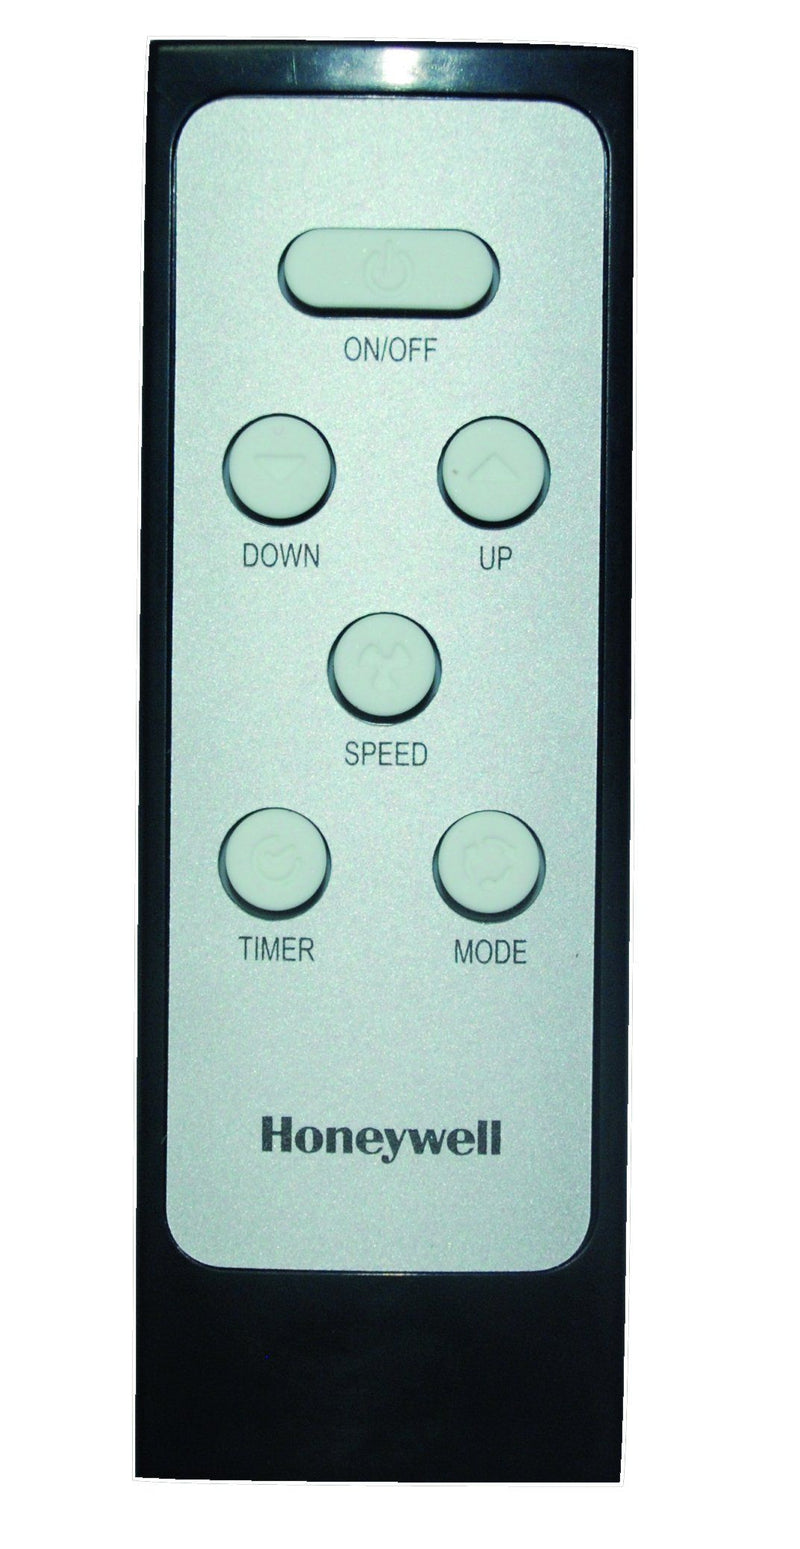 Honeywell MN12CEDWW 12000 BTU 550 sq. ft. Quiet Dual Hose Portable Air Conditioner with 69 Pint Dehumidifier (Classic Series), White Portable Air Conditioner Honeywell